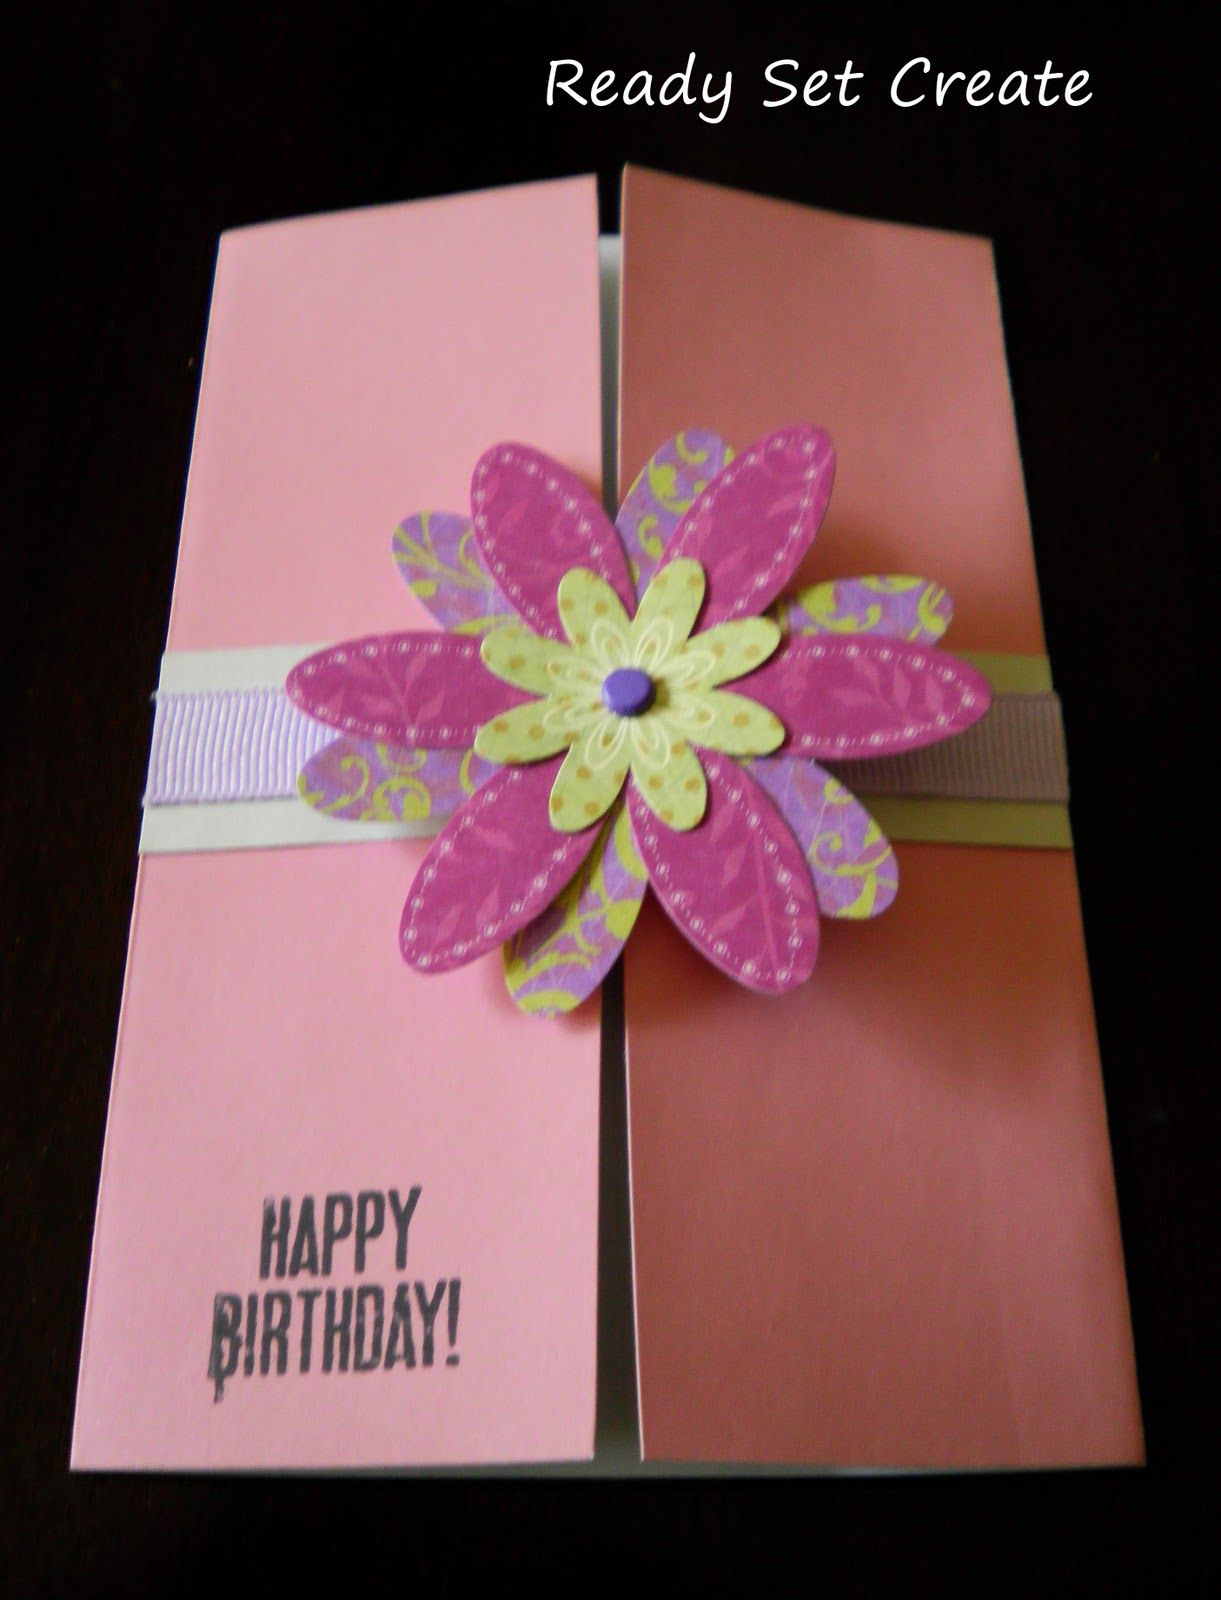 Charming Handmade Greeting Card Making Ideas Part - 12: Do You Ever Make Your Own Greeting Cards? I Used To All The Time But I Kind  ...